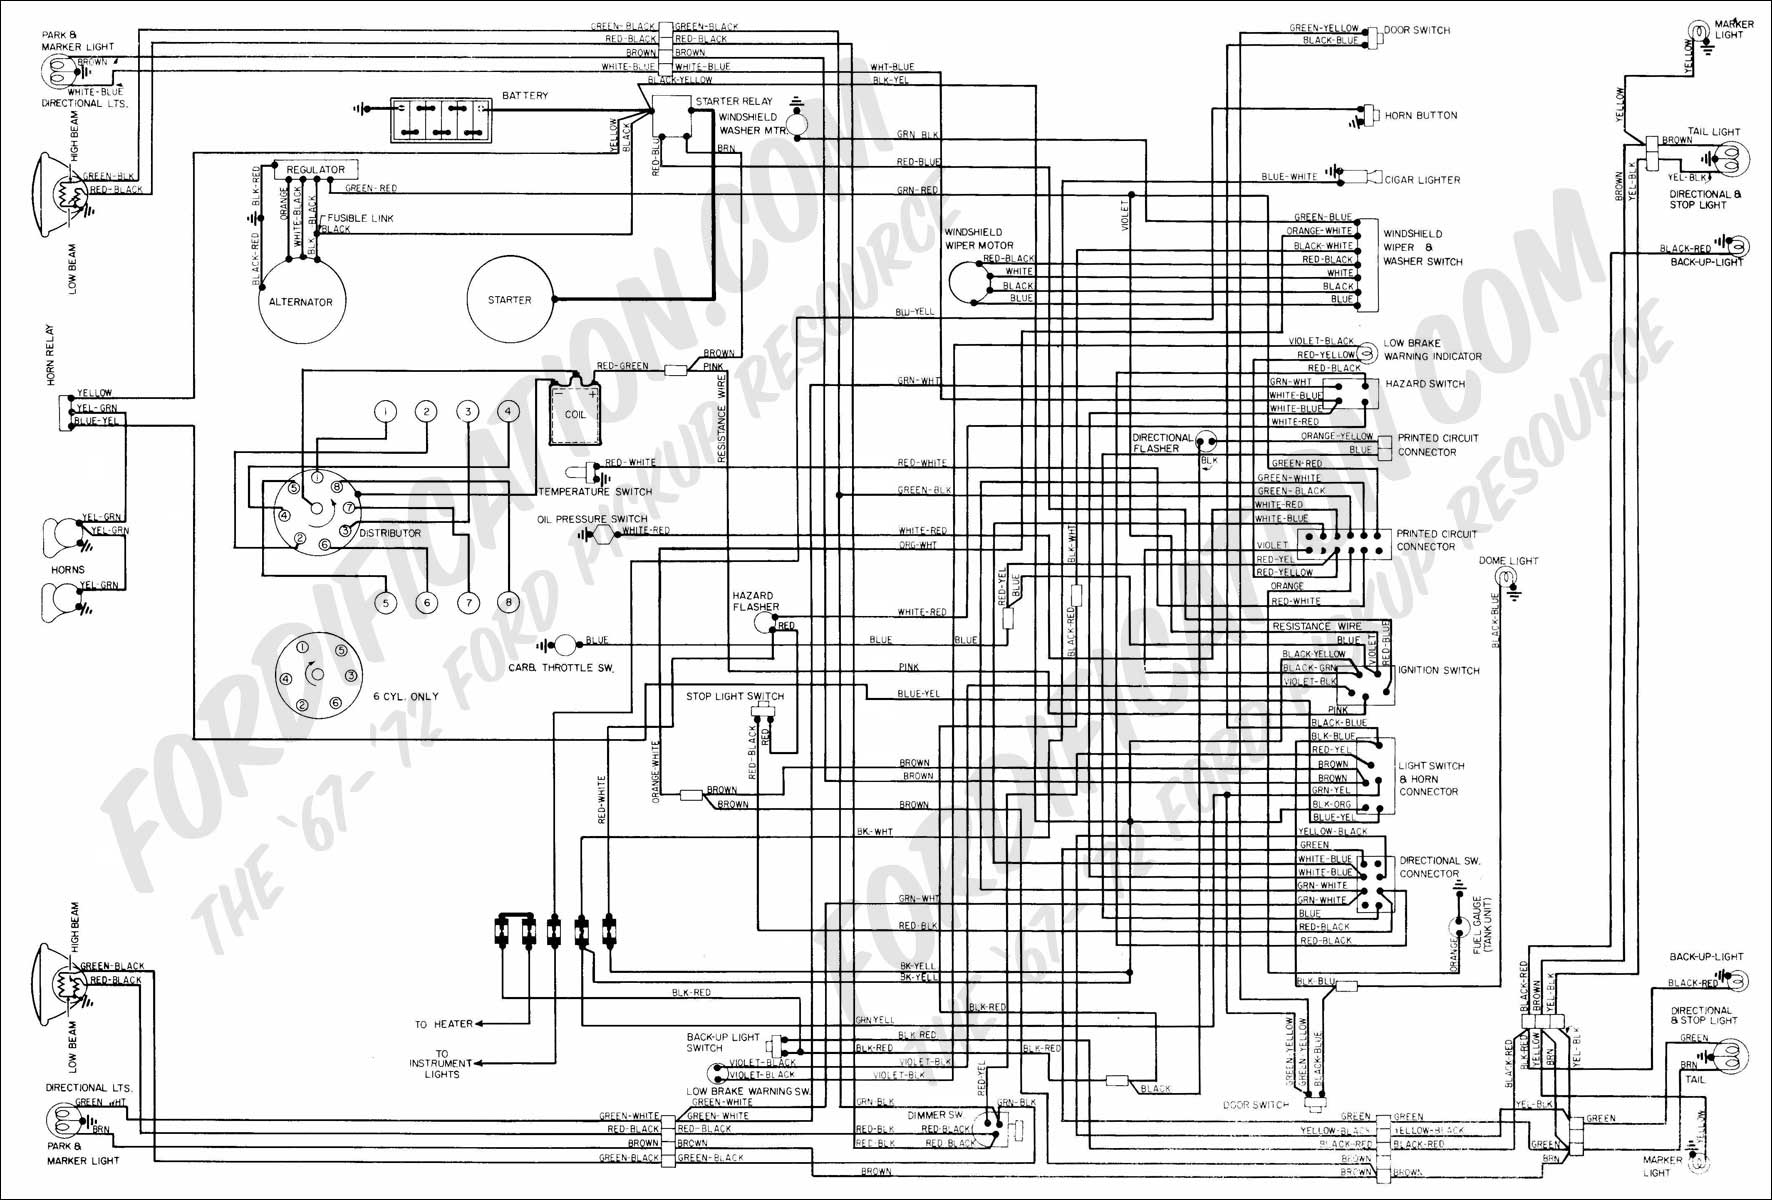 2008 Ford Focus Wiring Diagram Inside Wire besides Schematics h also Ford F150 Lariat Fuse Panel Diagram Cigar Cigarette Lighter furthermore Dodge Dakota Wiring Diagrams as well Schematics i. on 2003 ford expedition electrical schematic